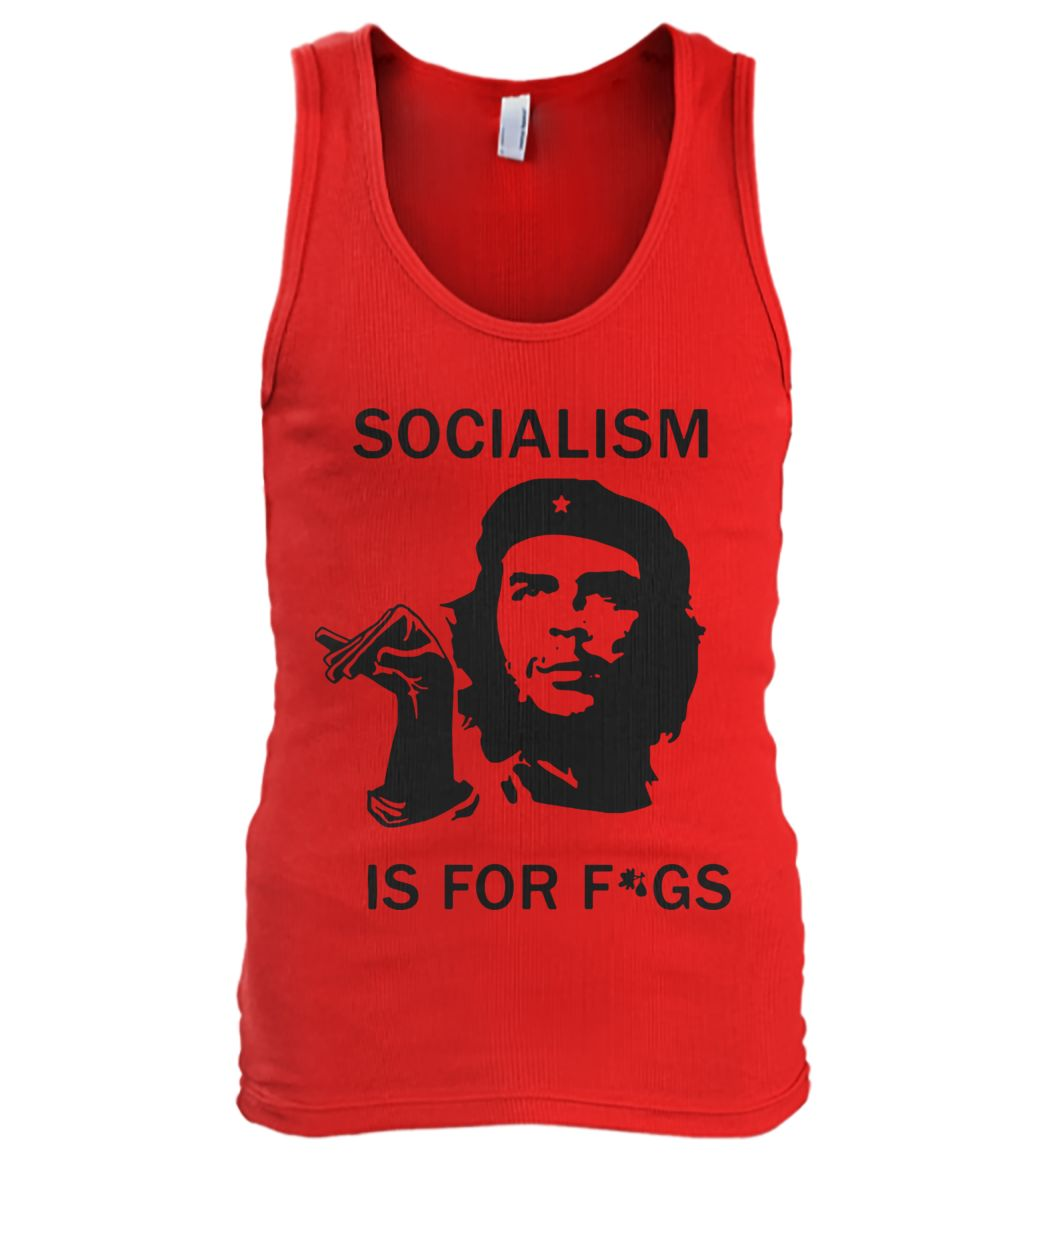 Che guevara socialism is for figs men's tank top